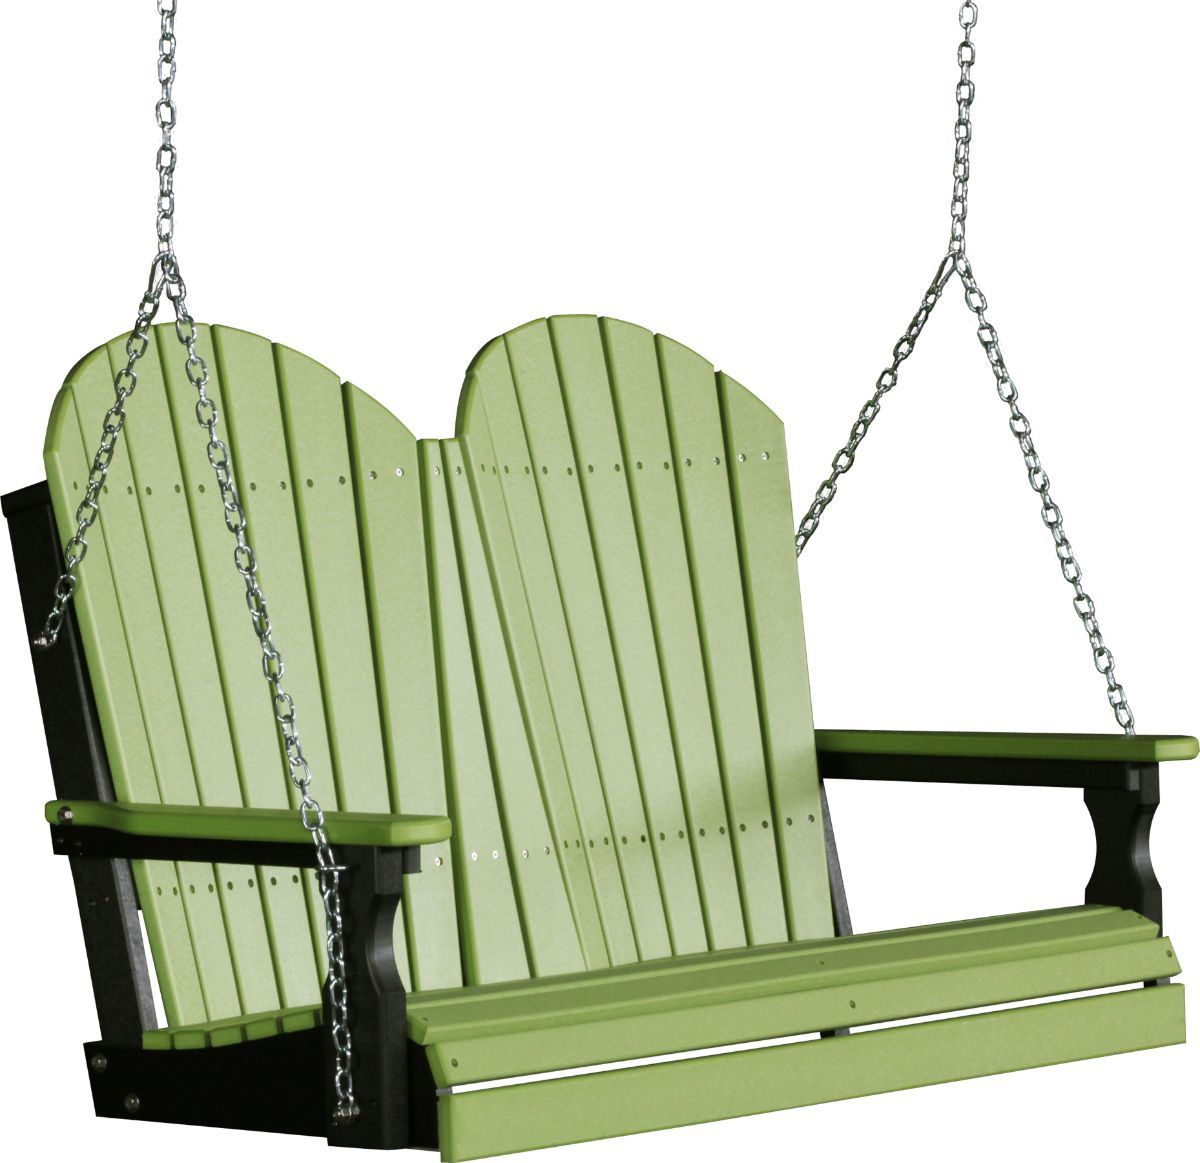 Lime Green and Black Tahiti Adirondack Porch Swing